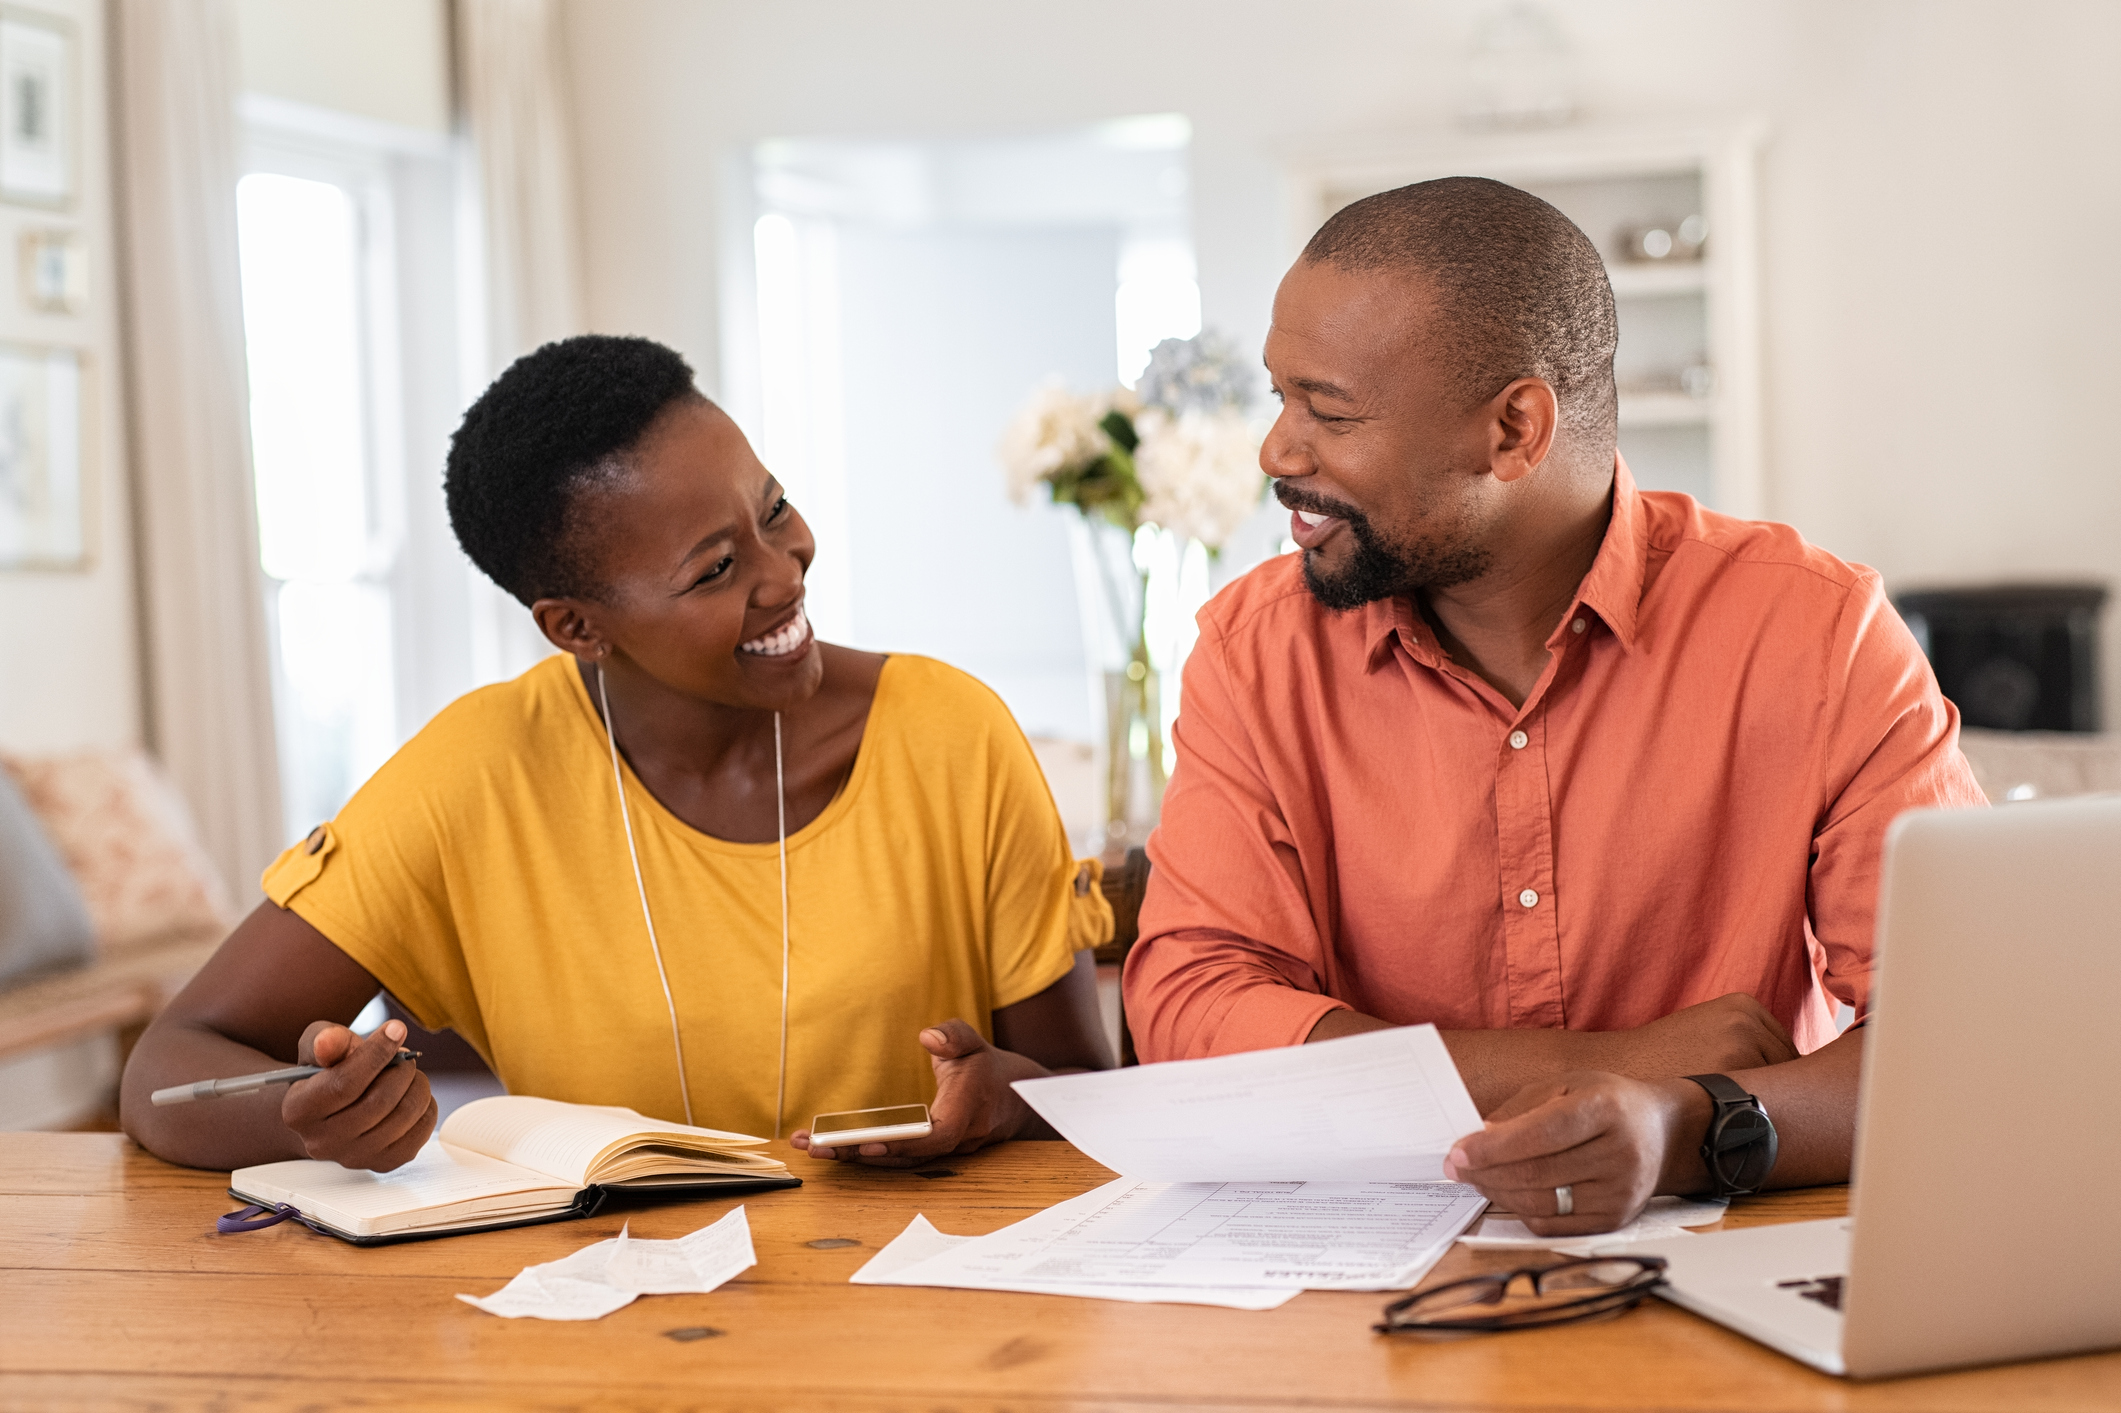 How to Get Your Partner on Board With Your Budget